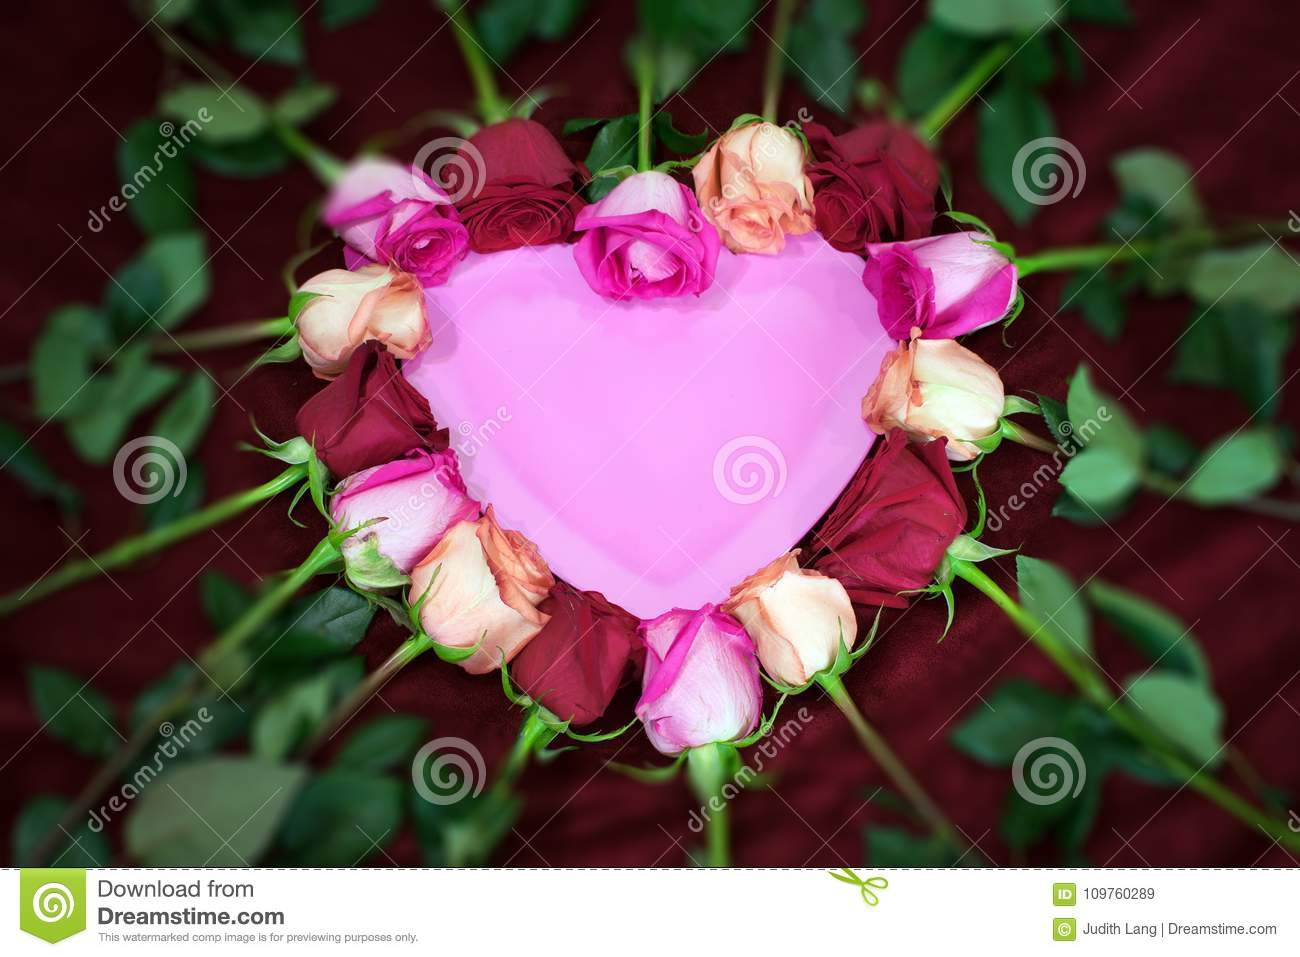 Red and pink roses form a heart shape